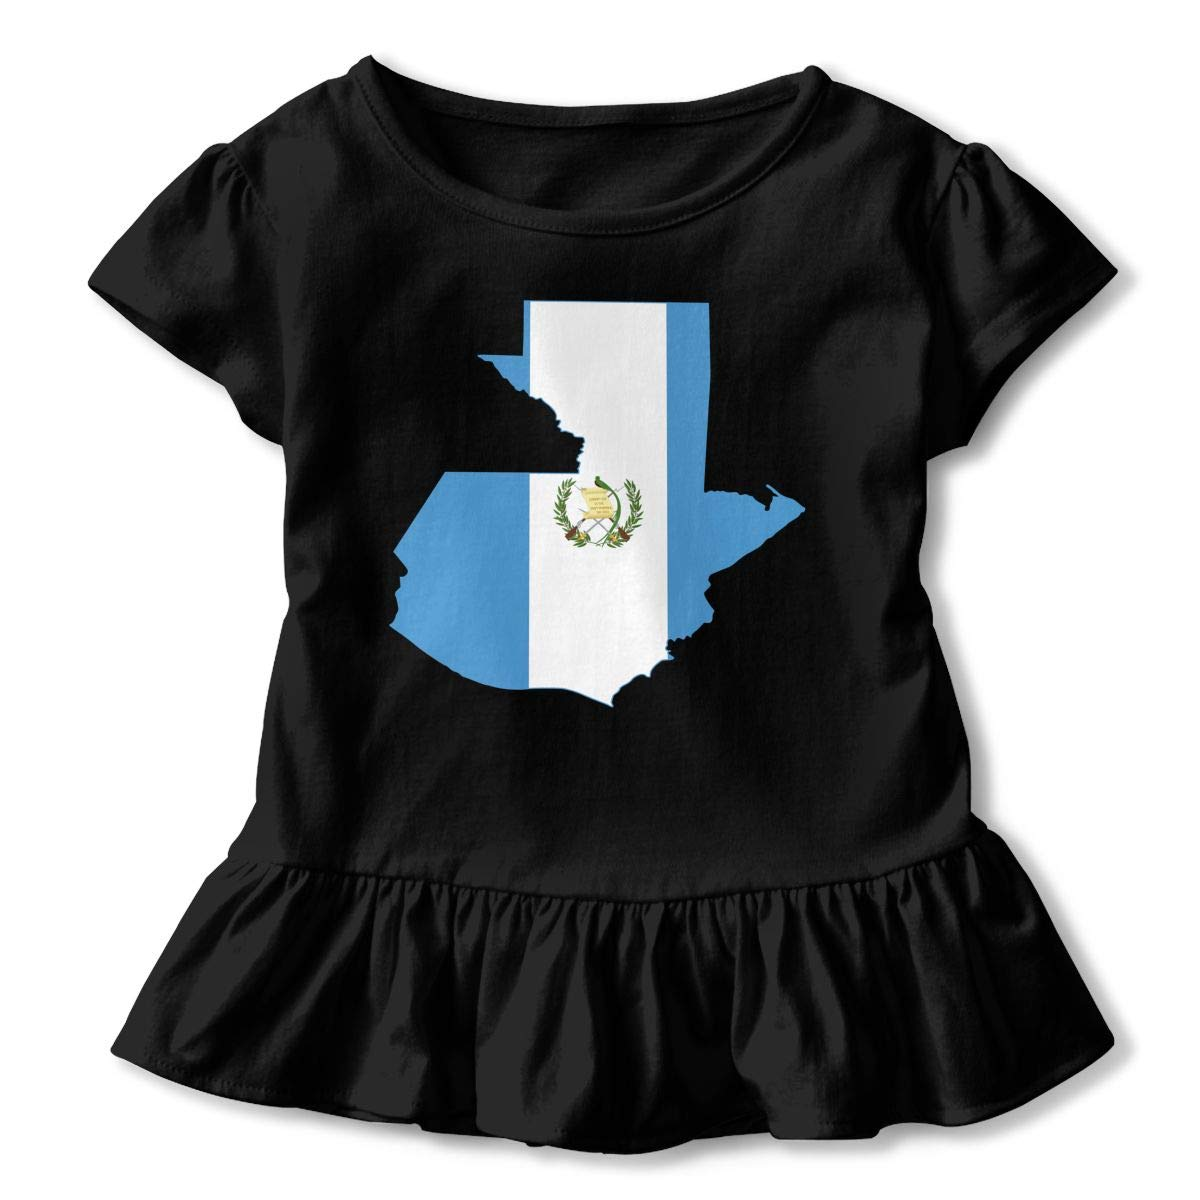 JVNSS Flag Map of Guatemala Fashion Kids Flounced T Shirts Graphic Tees for 2-6T Kids Girls